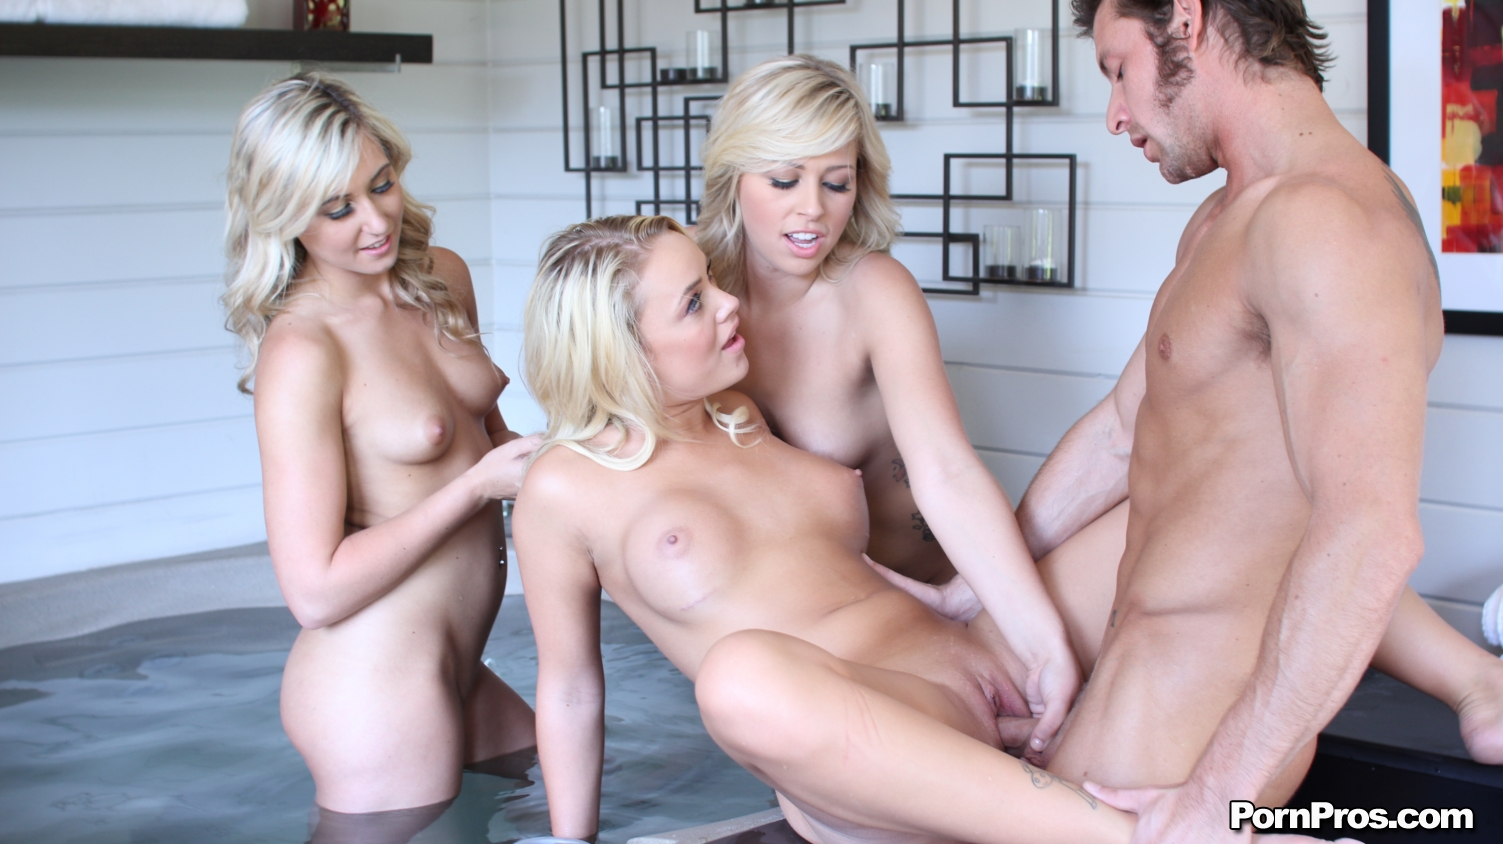 porno-video-krasivie-molodie-blondinki-smotret-onlayn